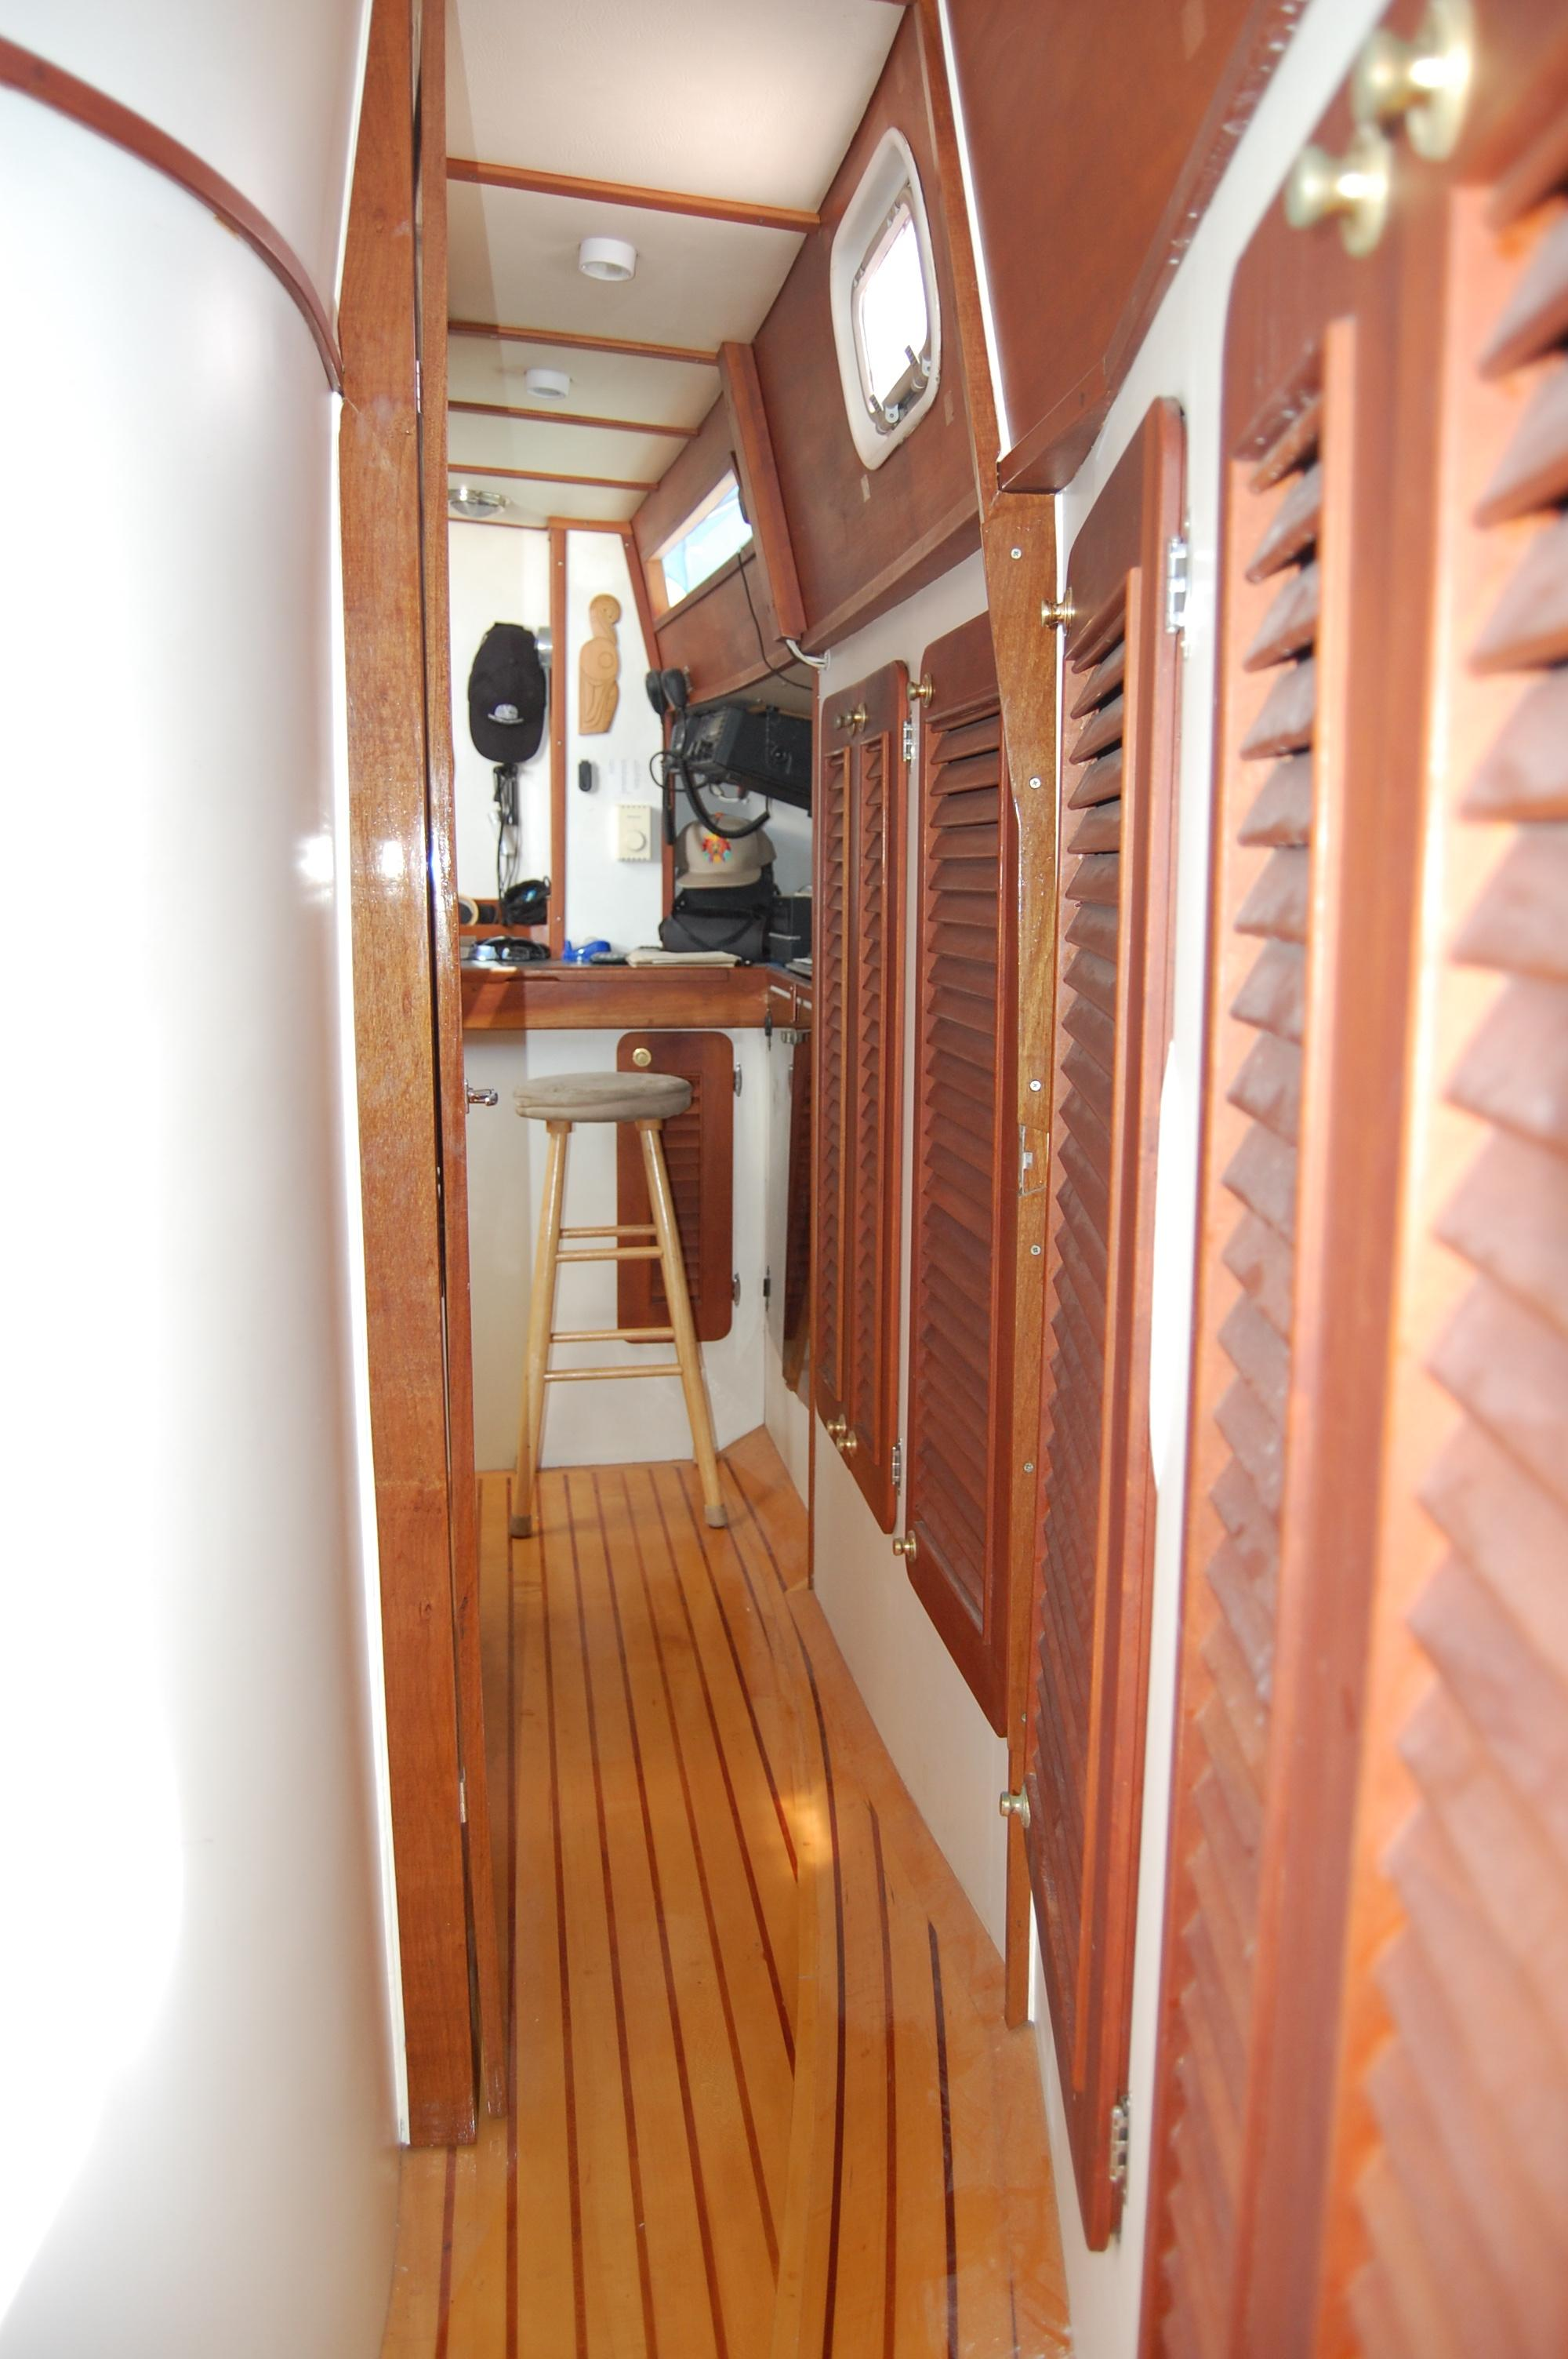 46' Maple Leaf Queen Cutter+Photo 116